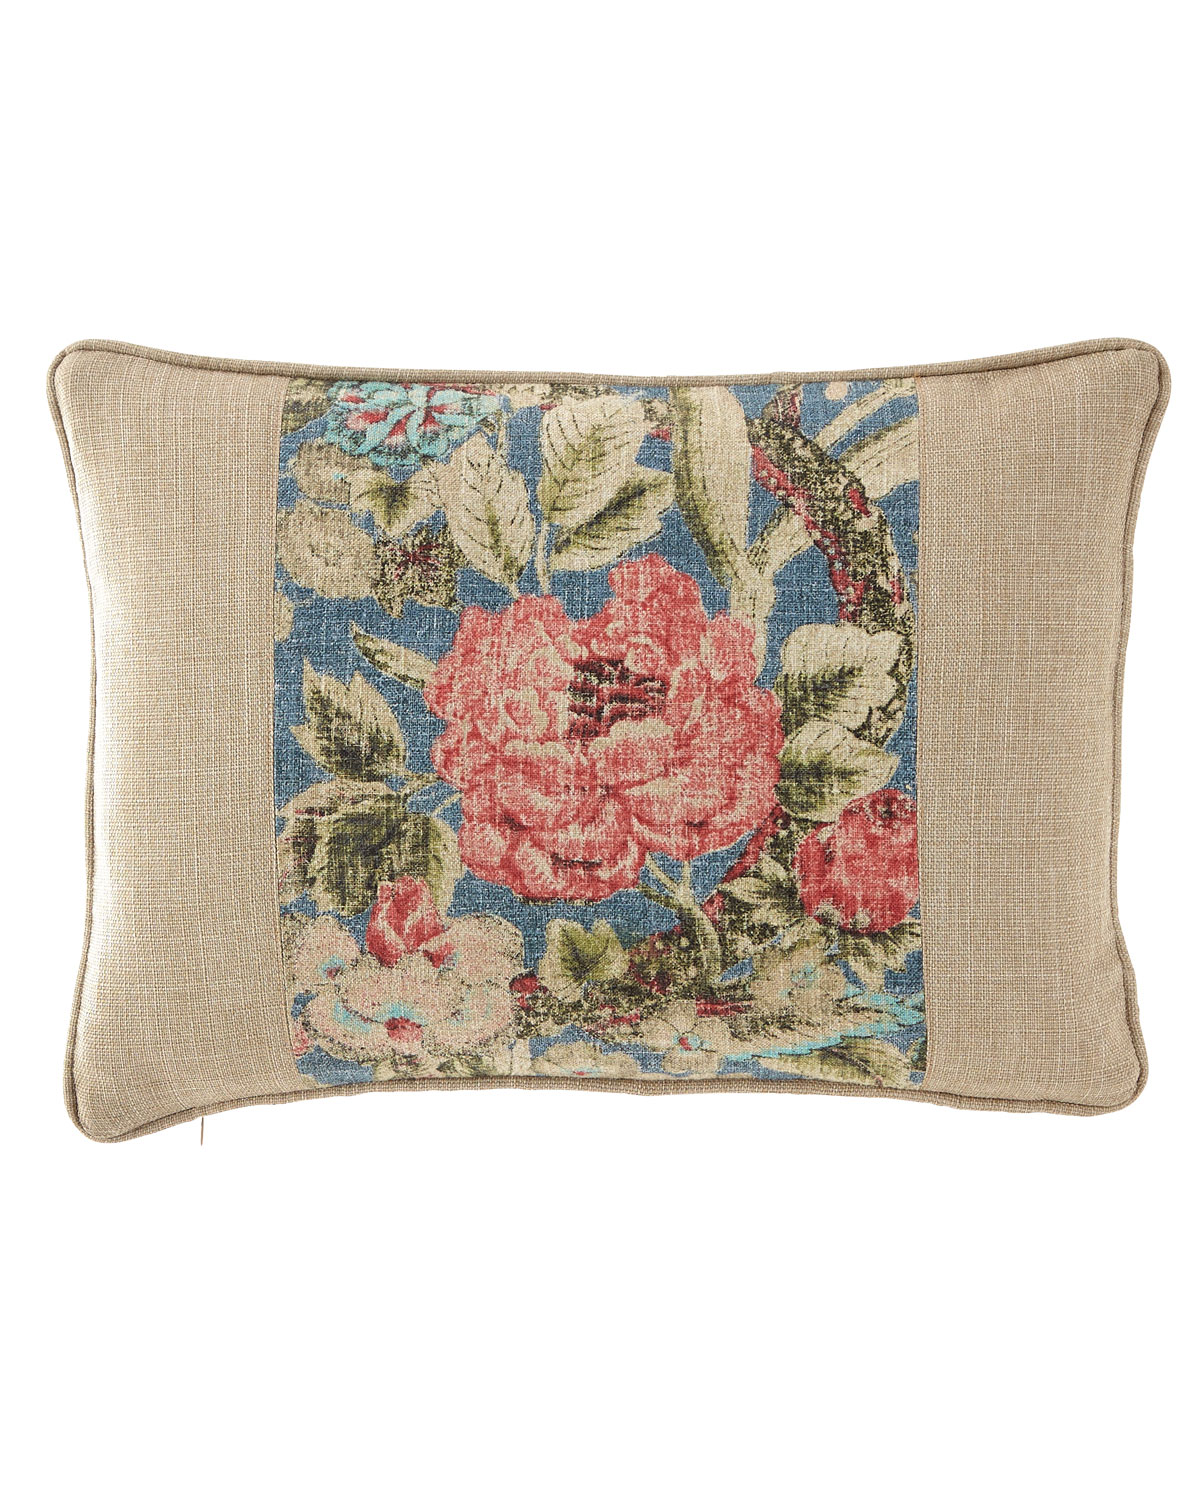 "Sherry Kline Home After Glow Boudoir Pillow, 14"" x 19"""